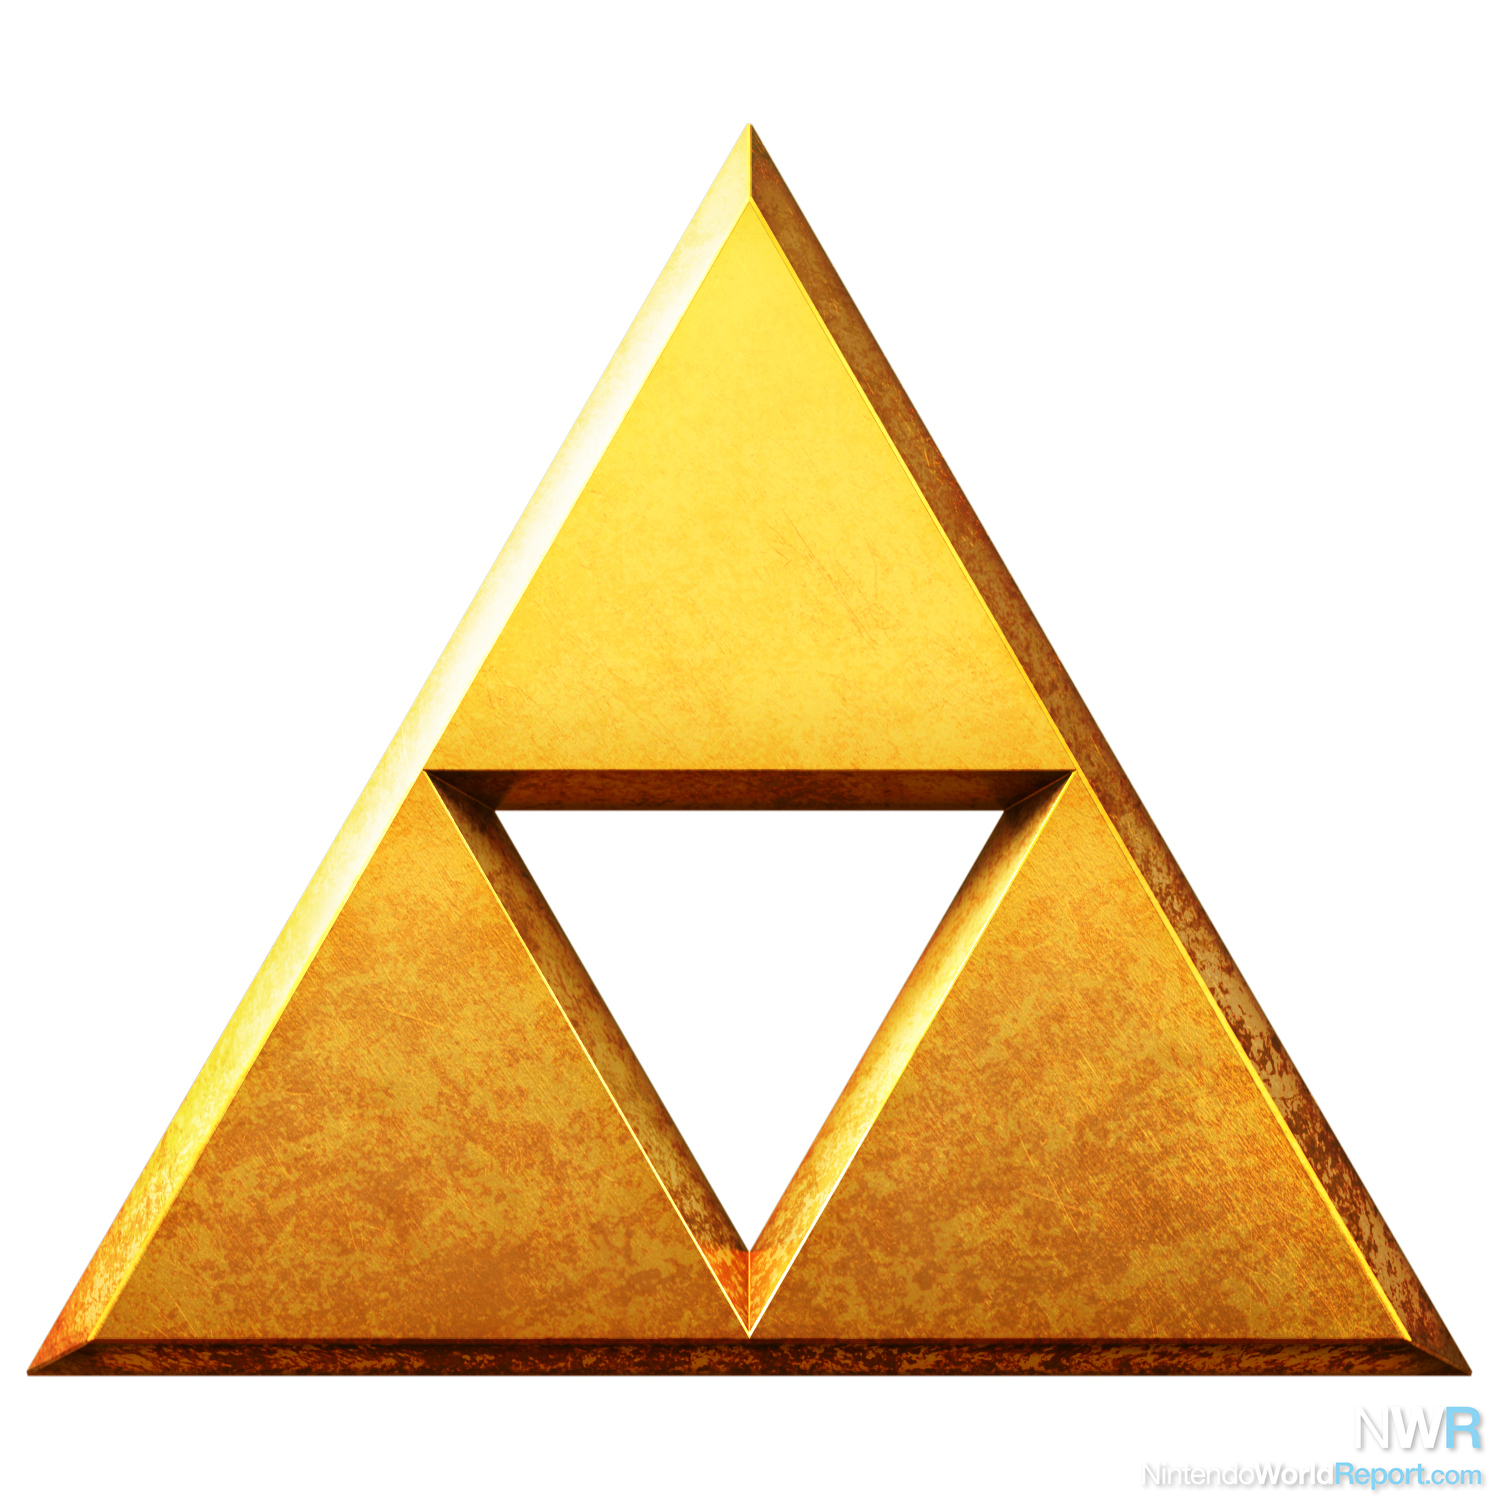 Hyrule Warriors Twinrova 512899168 together with Fandom Alphabet further How To Create A Moon Garden together with 32051 besides Twinrova  Ocarina of Time. on ocarina of time witches